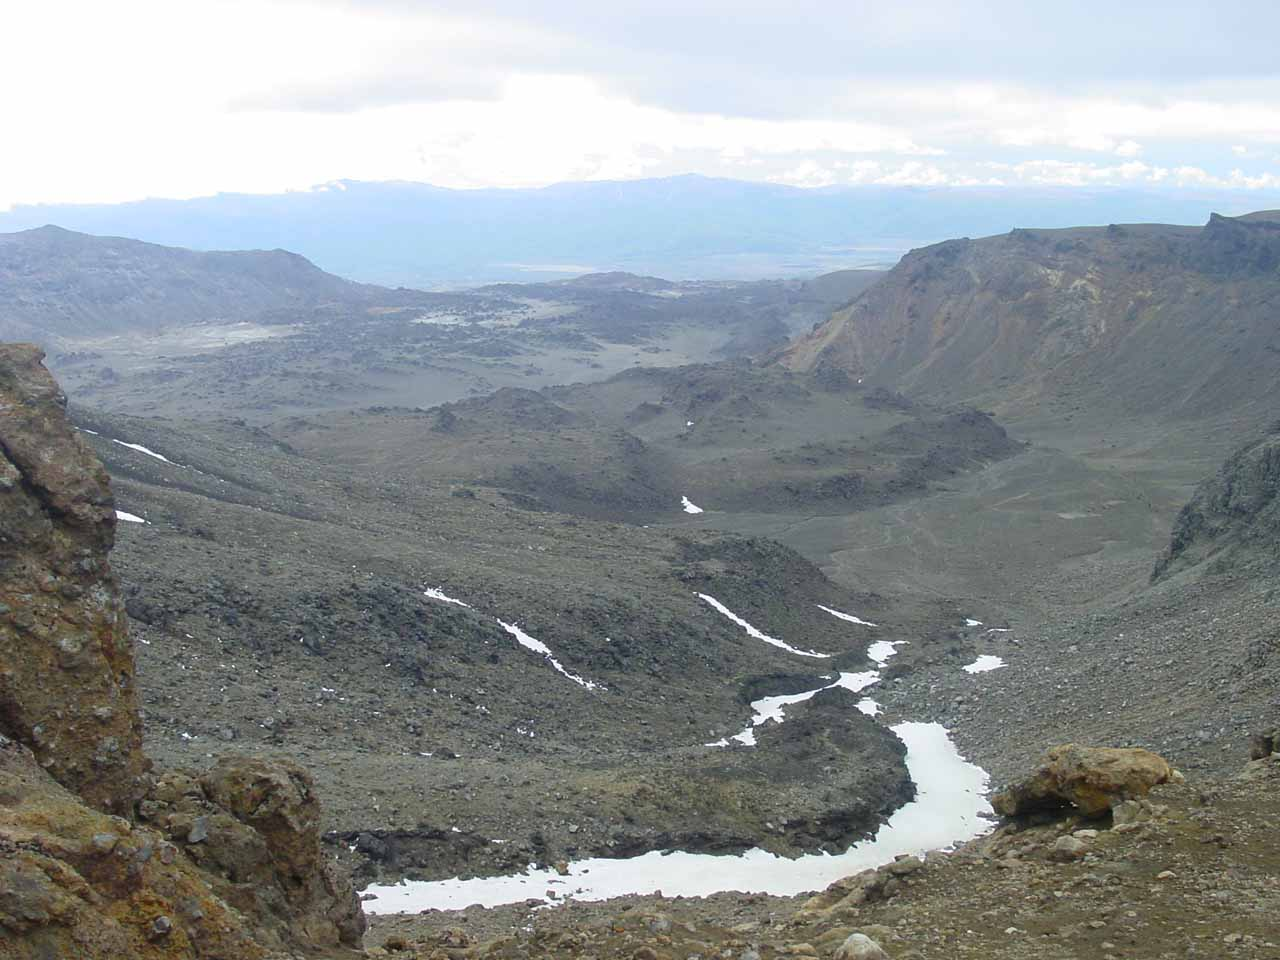 As you can see, the otherworldly scenery gained from hiking between at least three major volcanoes was the main appeal of doing the Tongariro Alpine Crossing